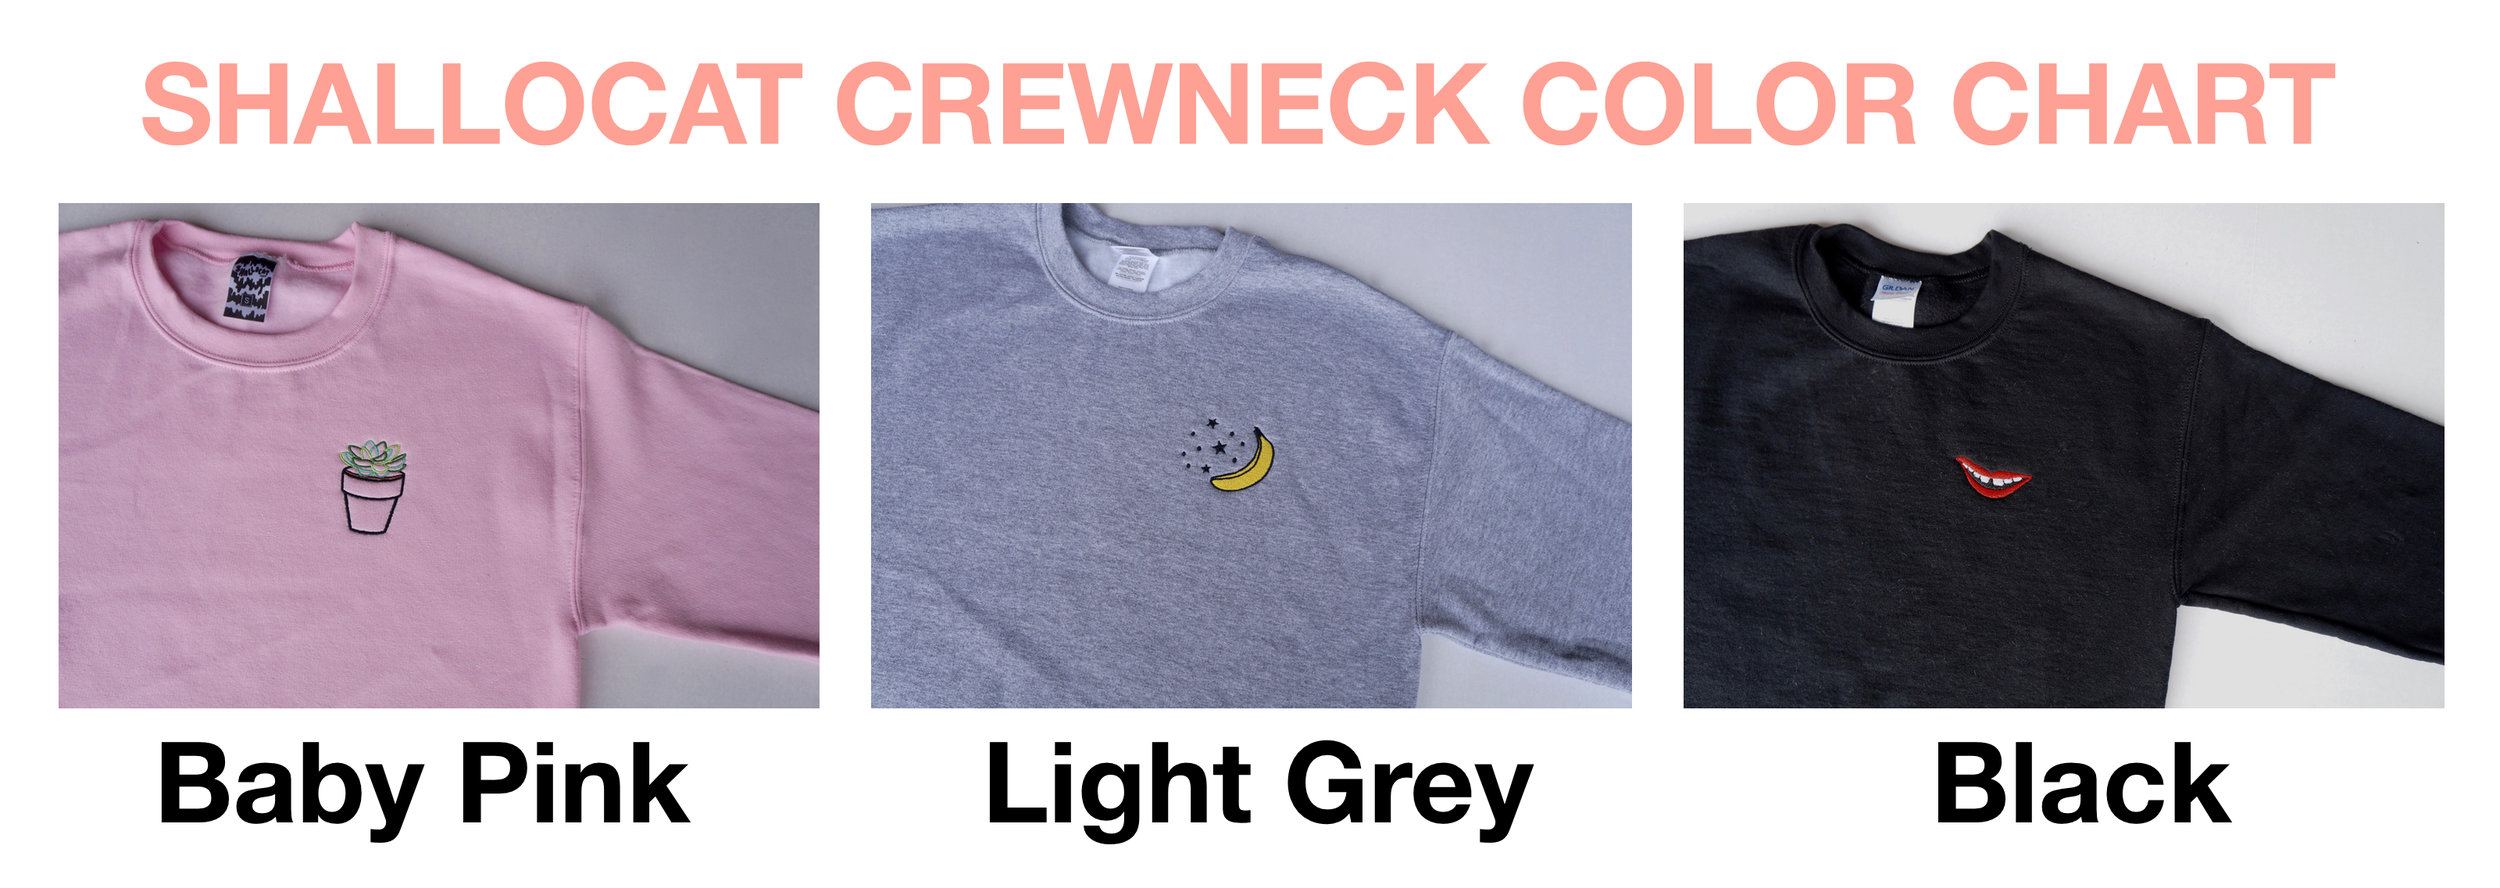 crewneck color chart.jpg